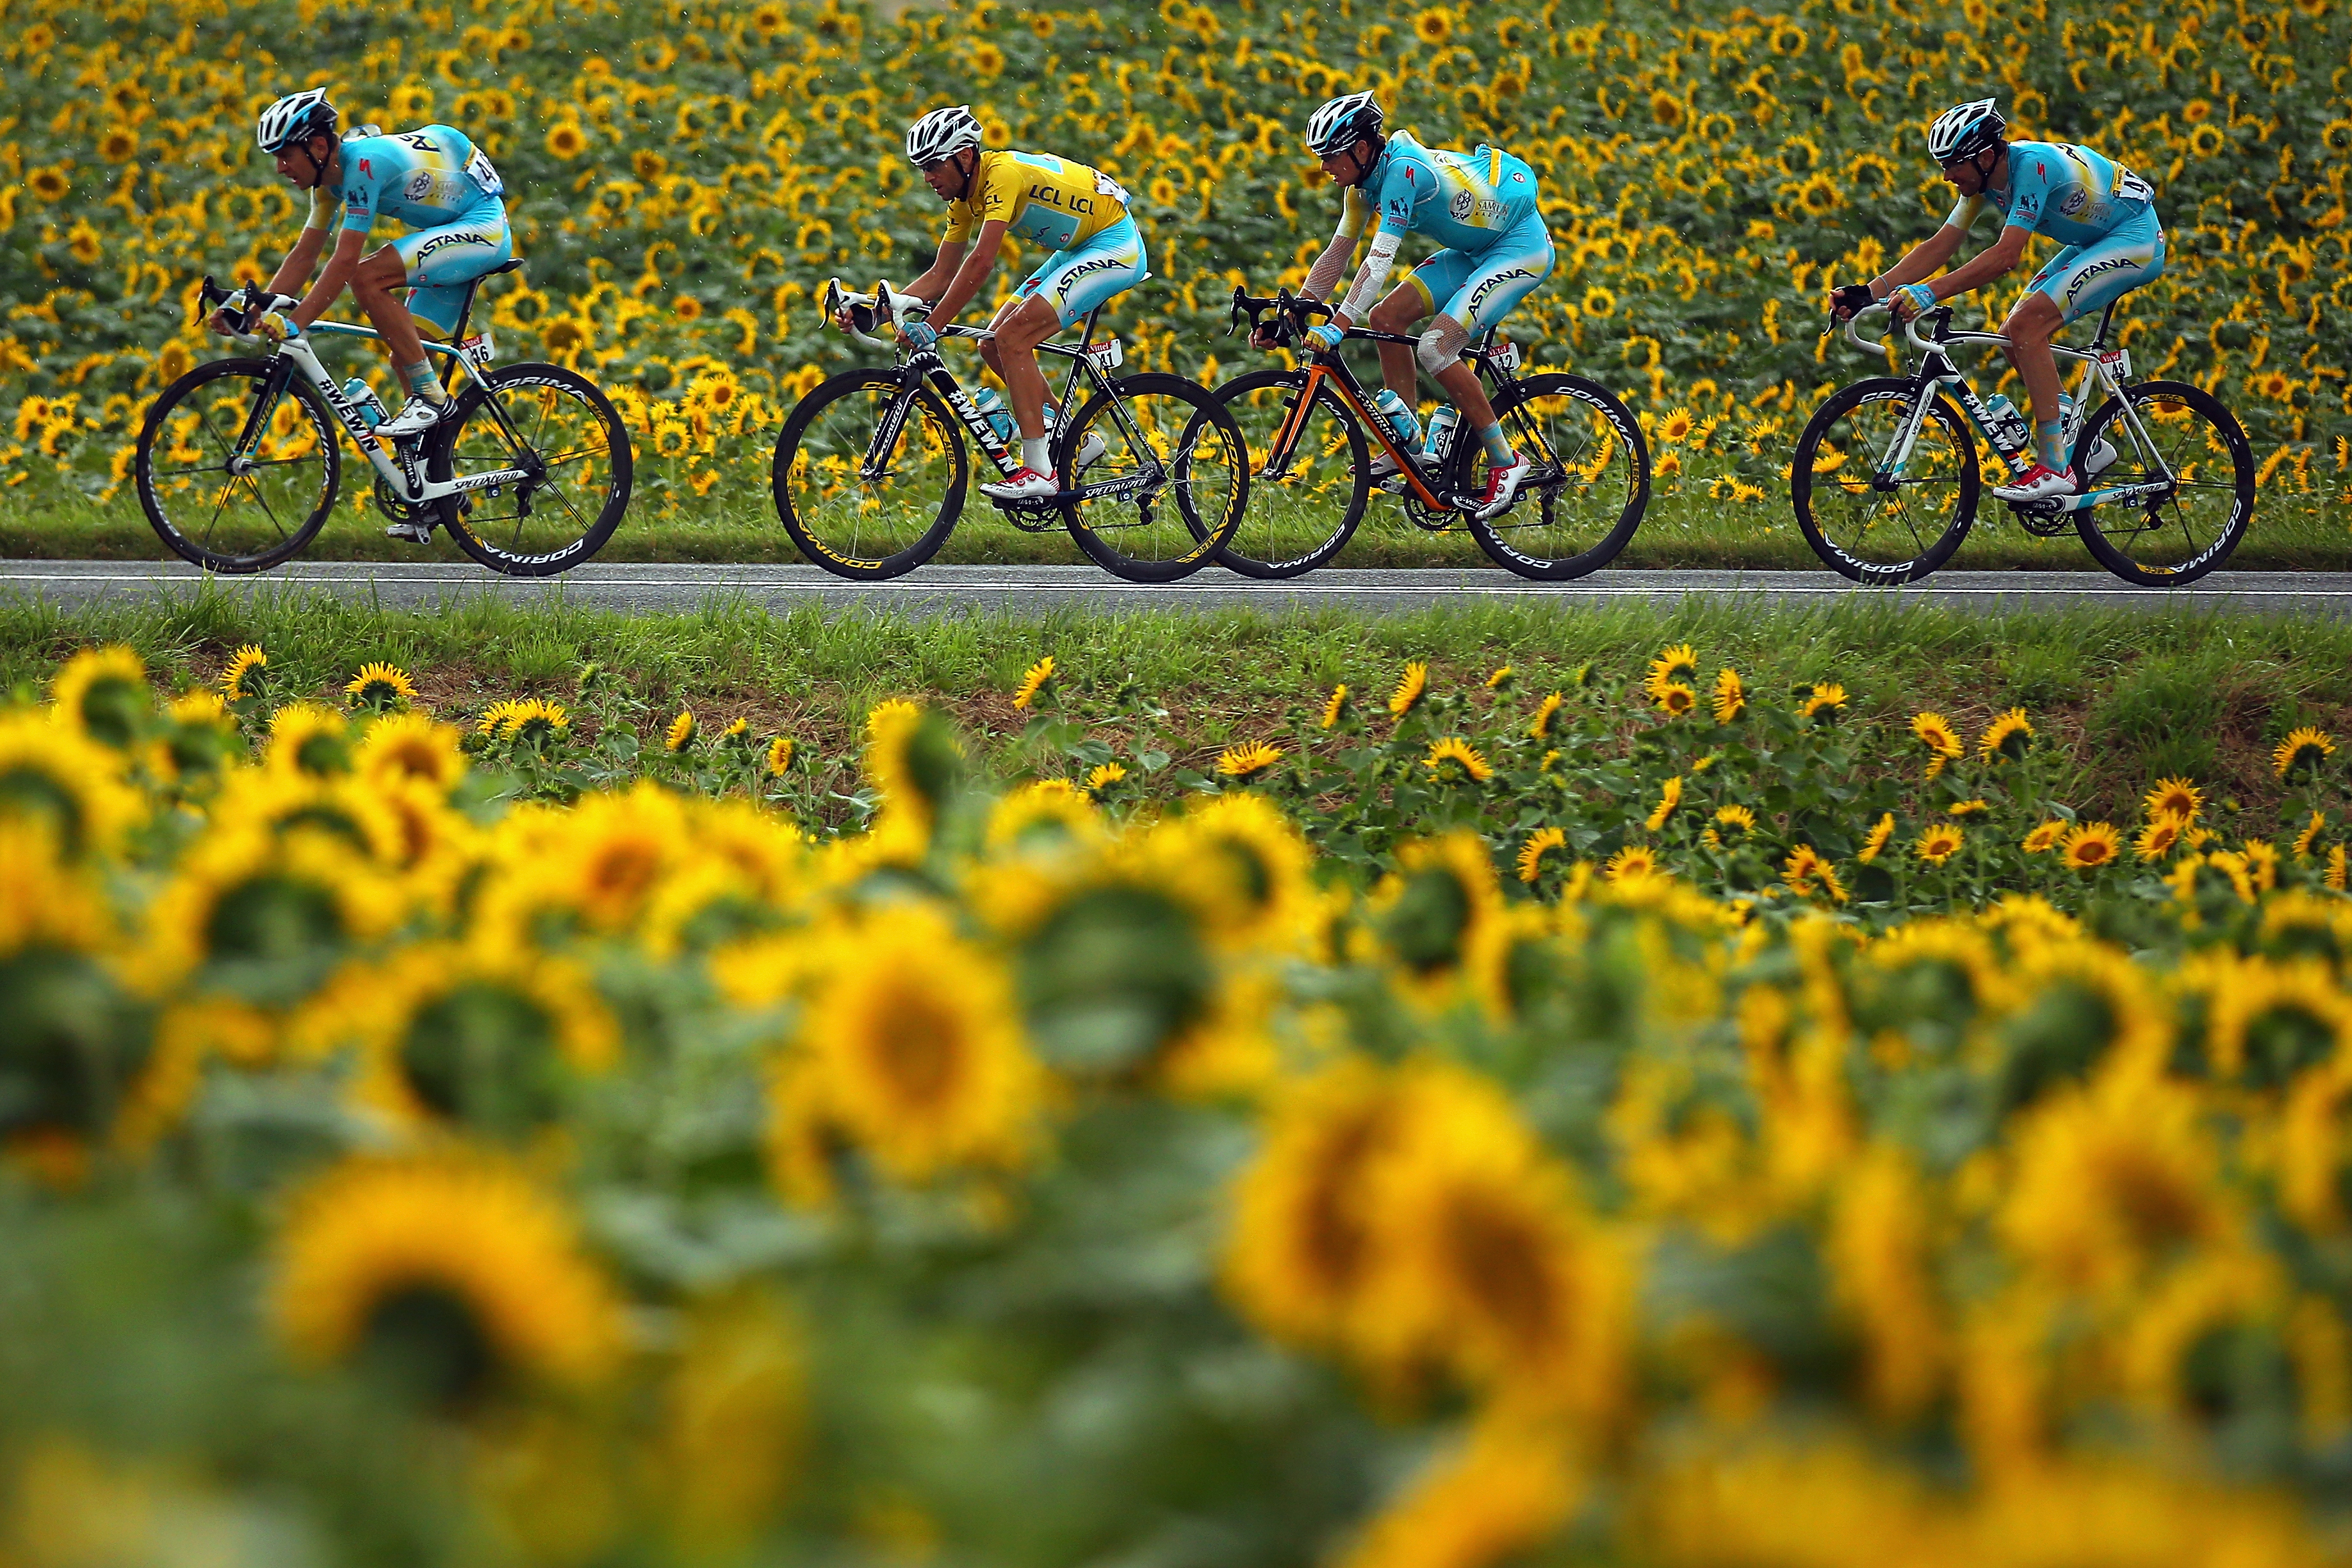 The race leader and yellow jersey Vincenzo Nibali of Italy and Astana Pro Team rides flankled by his teammates during the nineteenth stage of the 2014 Tour de France.